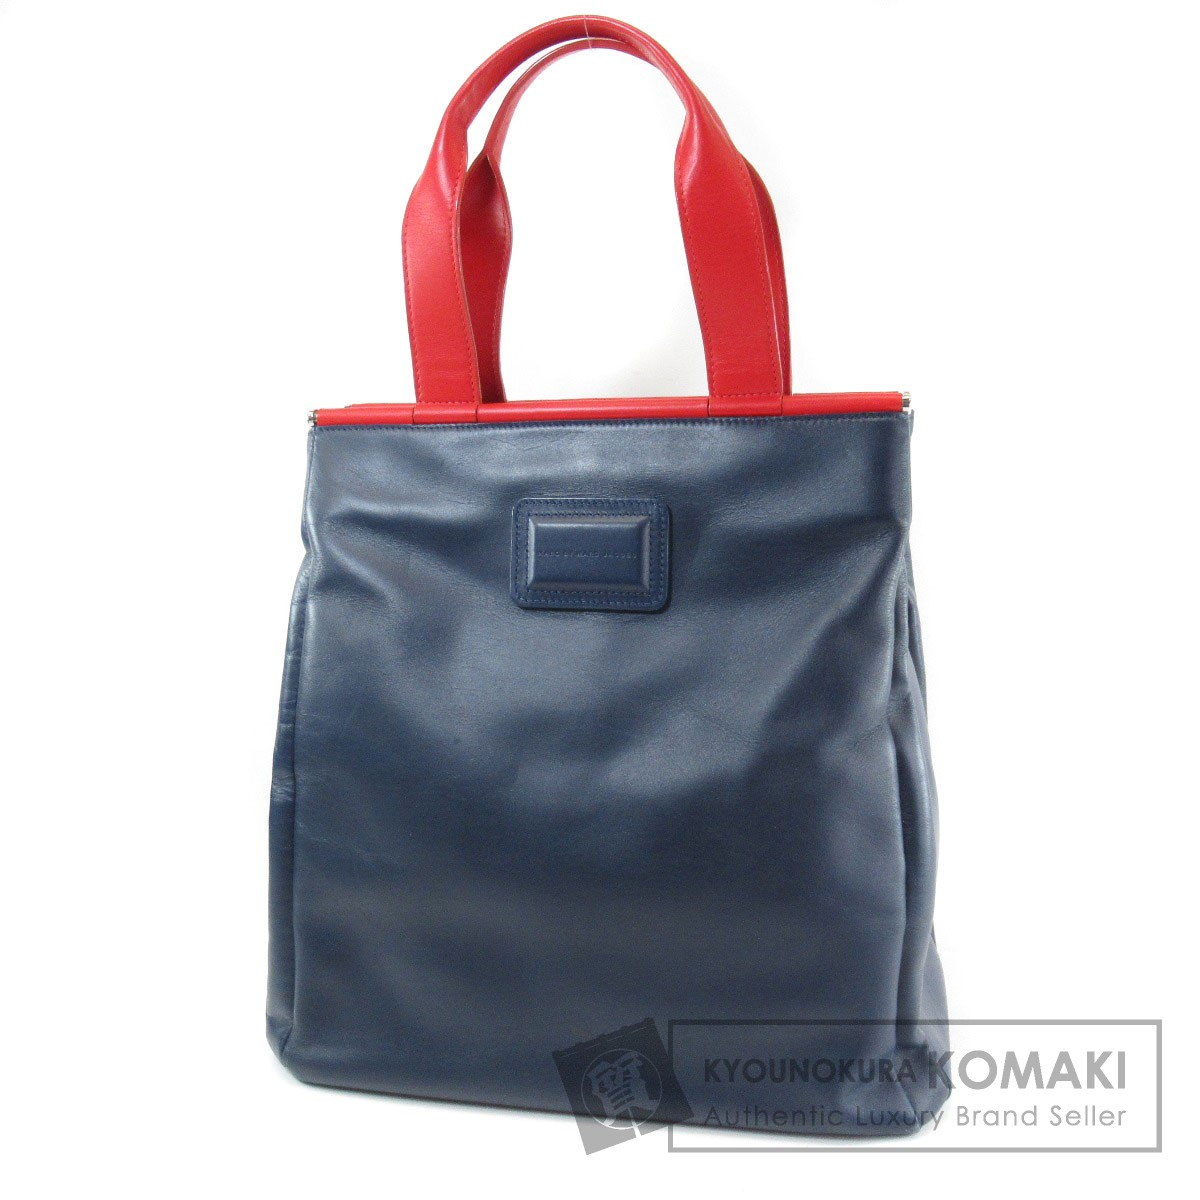 MARC BY MARC JACOBS M3121150 BARS AND BELLS TOTE トートバッグ レザー レディース 【中古】【マークバイマークジェイコブス】